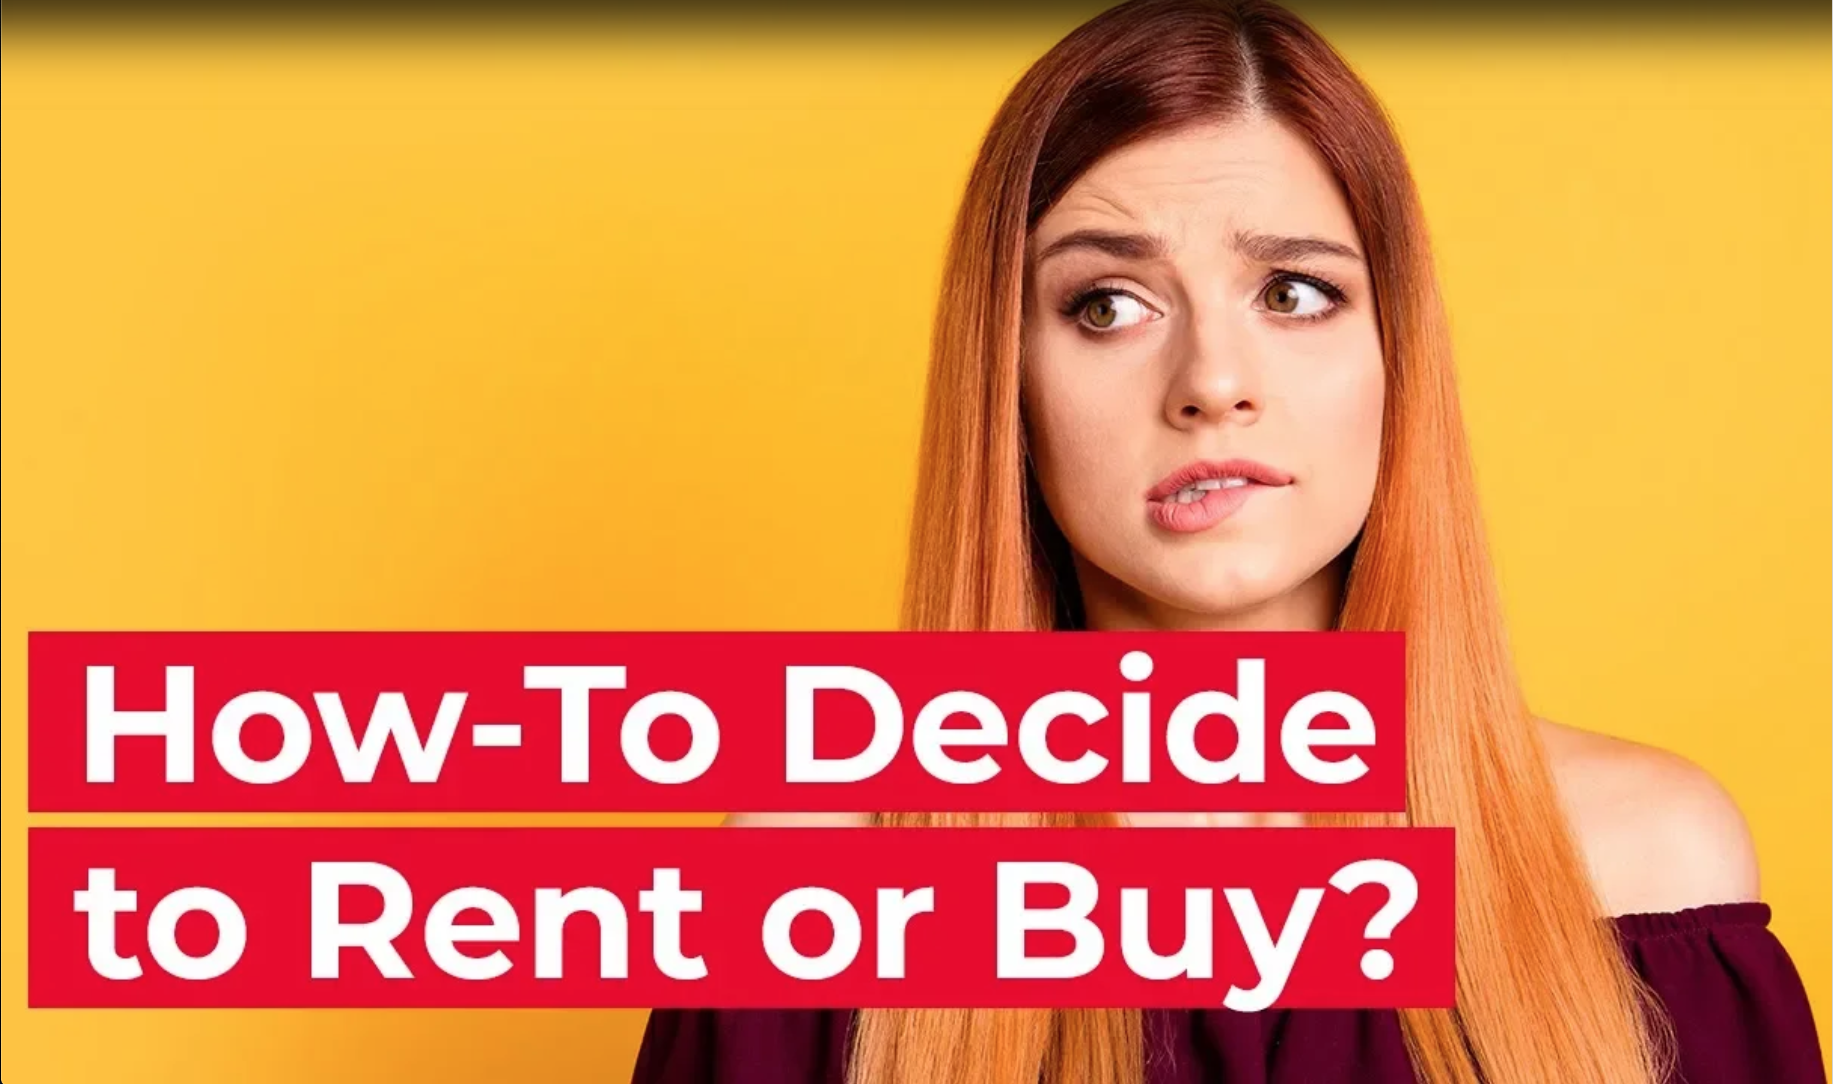 How to Decide if You Should Rent or Buy